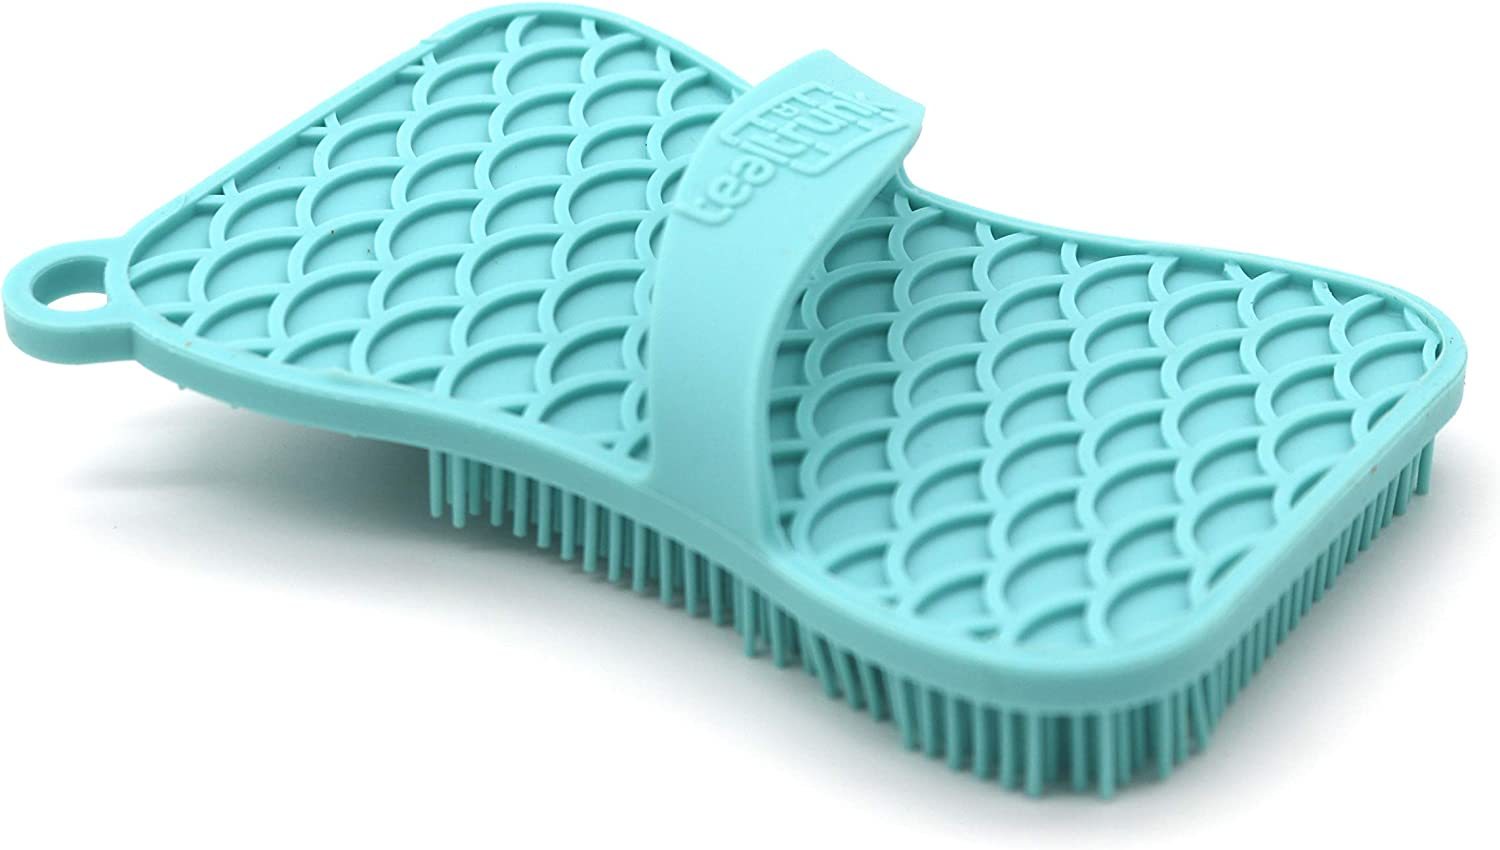 Heat Resistant Antibacterial Teal Trunk Silicone Sponge and Scrubber for Kitchen and Bathroom Cleaning Eco-Friendly Odor and Mold Free